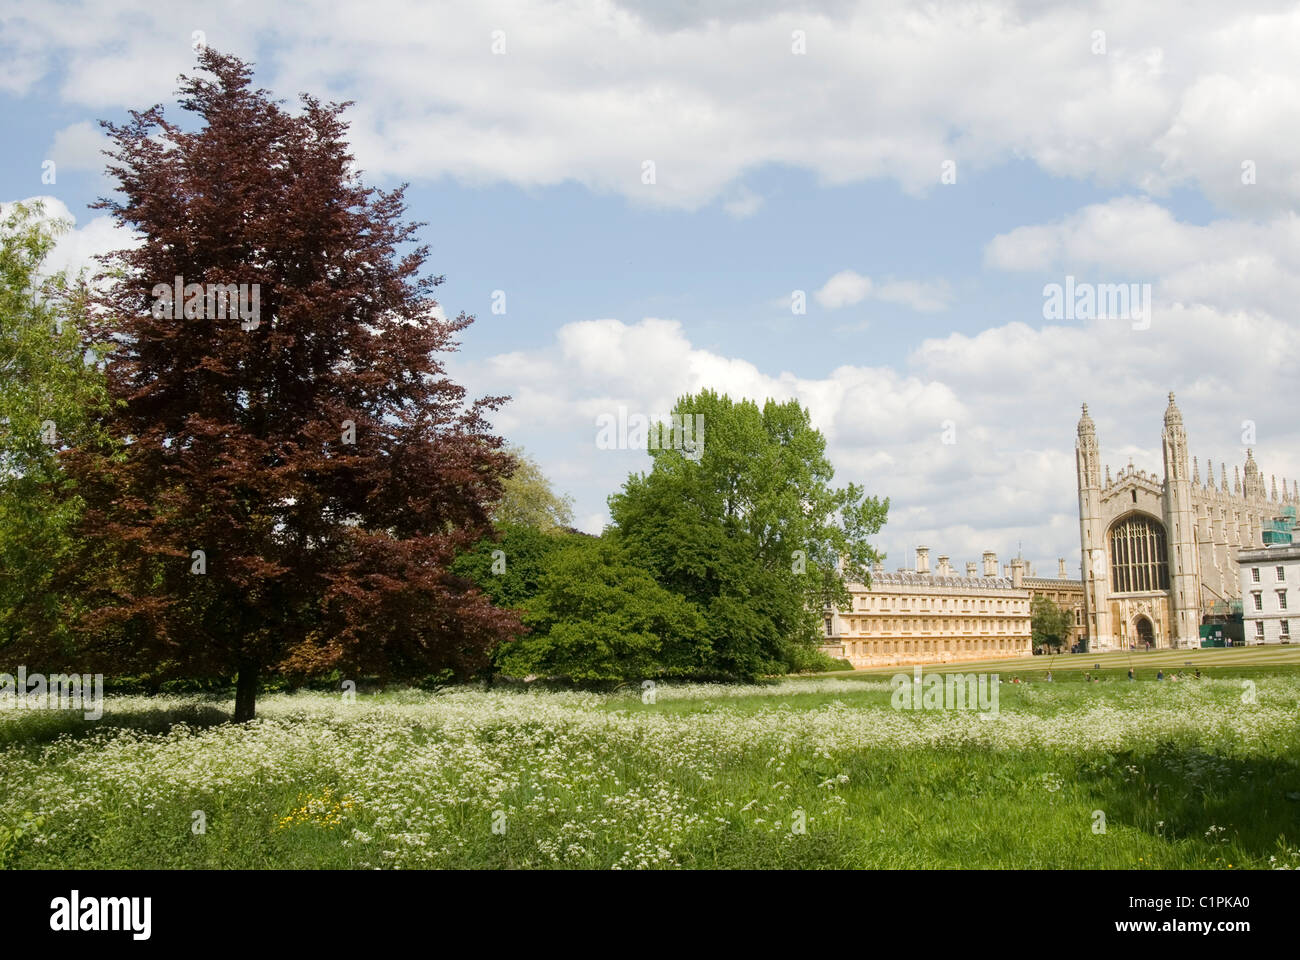 England, Cambridgeshire, Cambridge, King's College Chapel - Stock Image